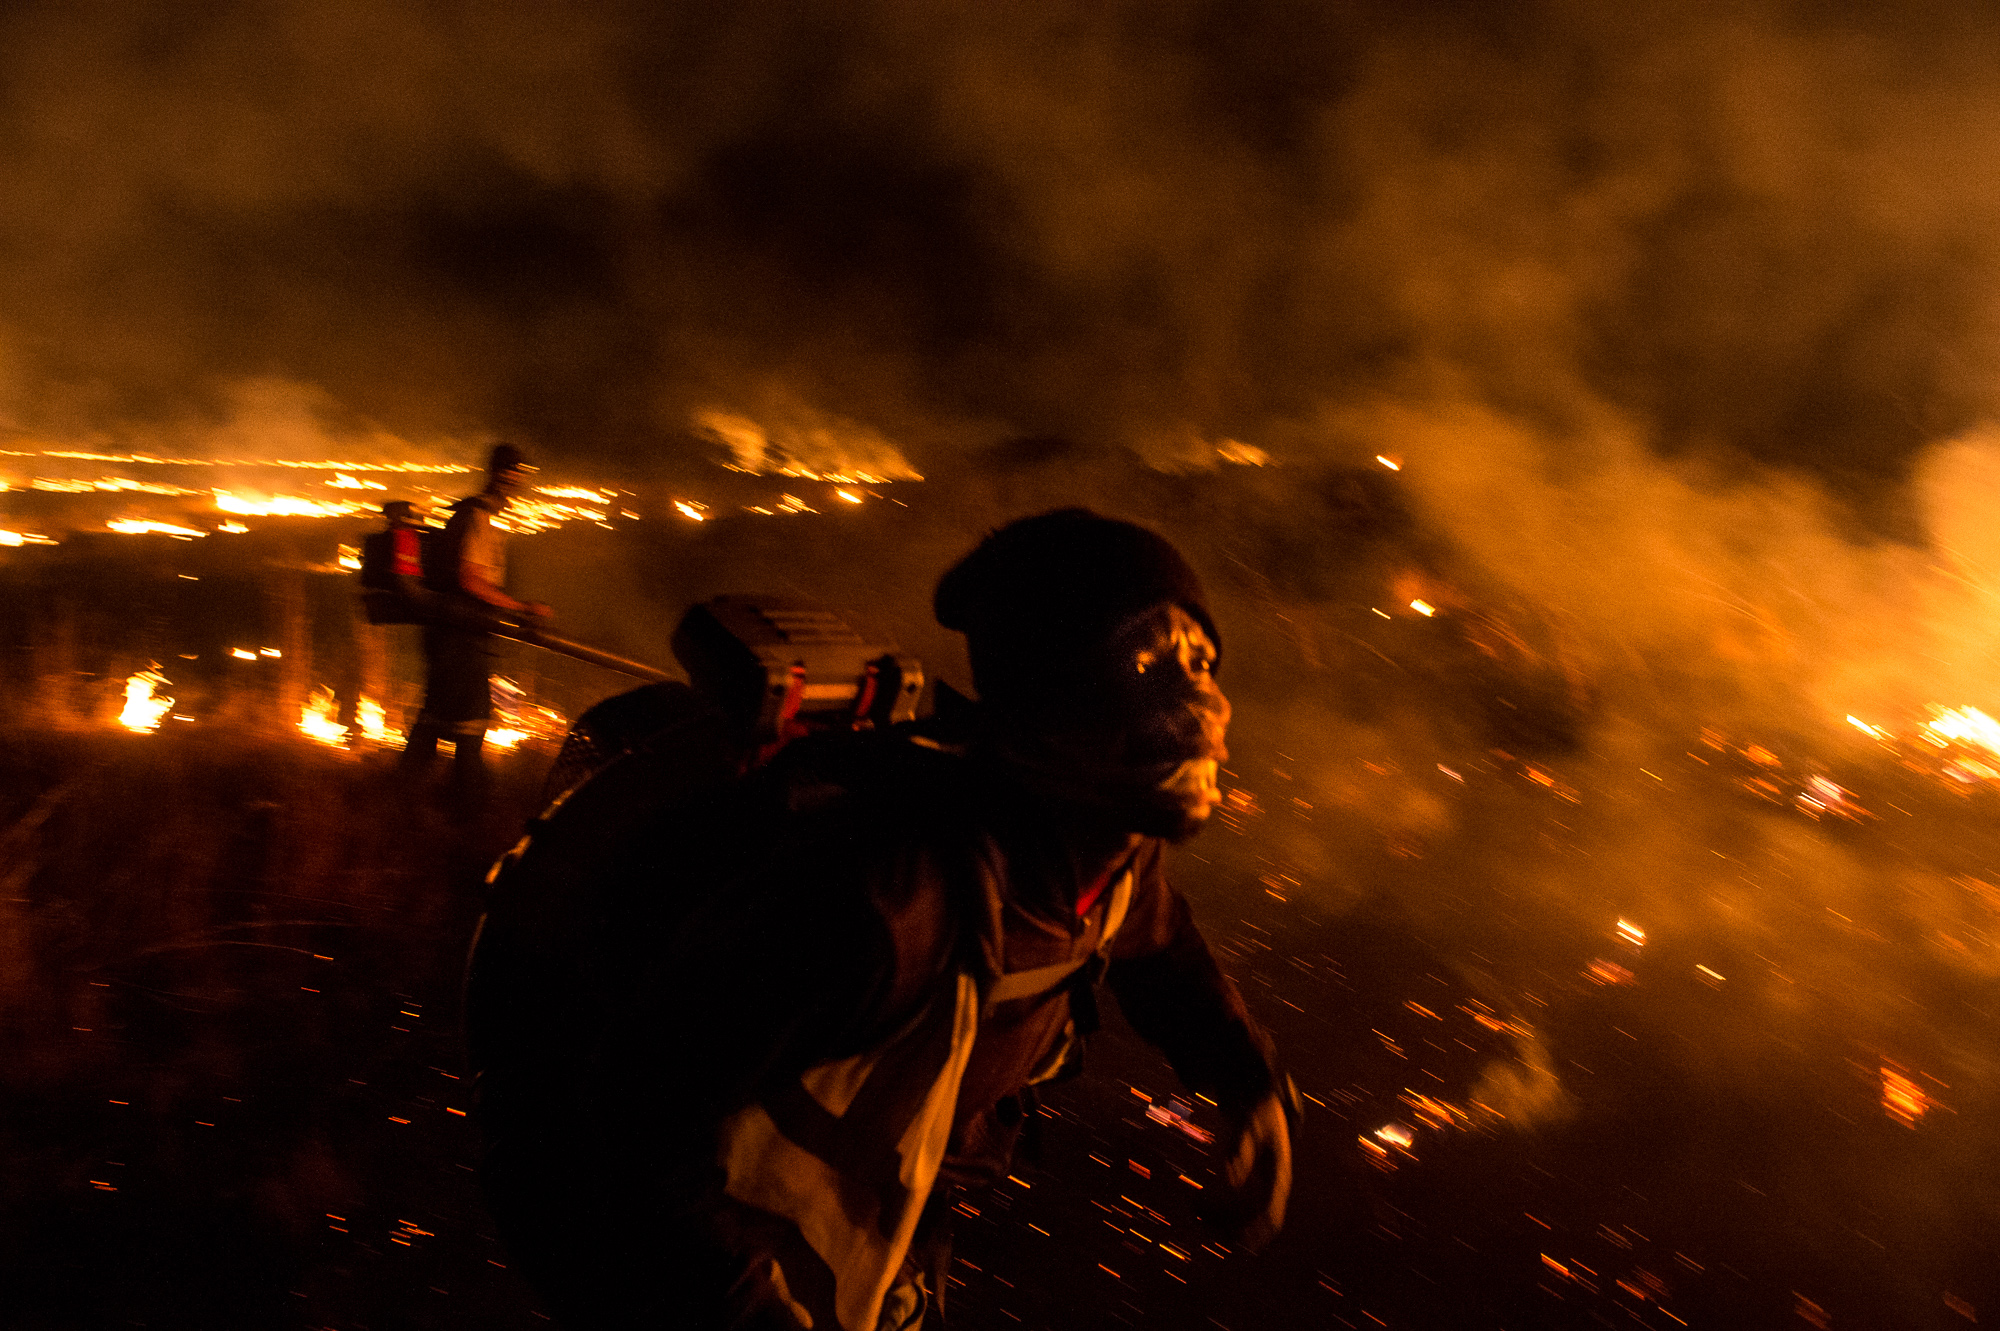 South Africa, Gauteng, 20.07.2018 // Farmers and farmworkers are  fighting  fires on their land. It's the third  fire this night. They assume the  fires are set.// Lucas Bäuml